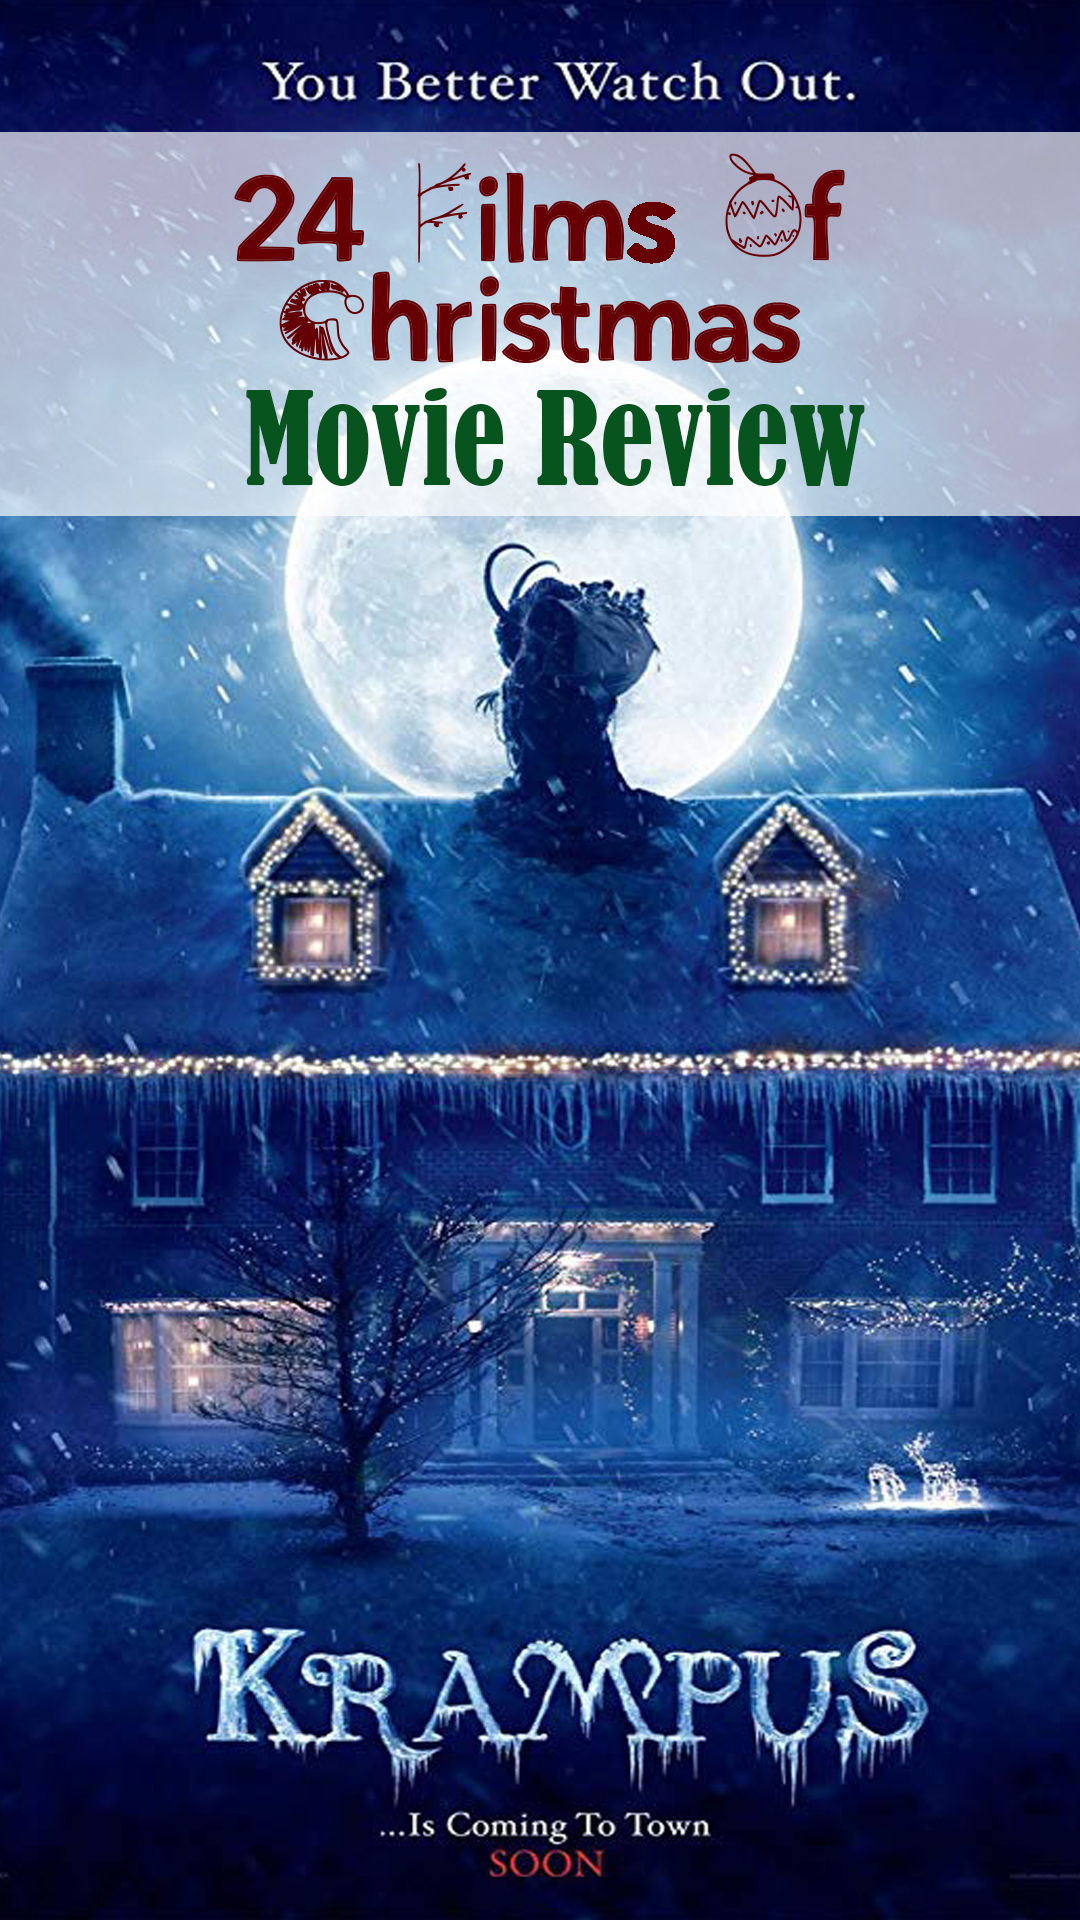 Krampus Film Review